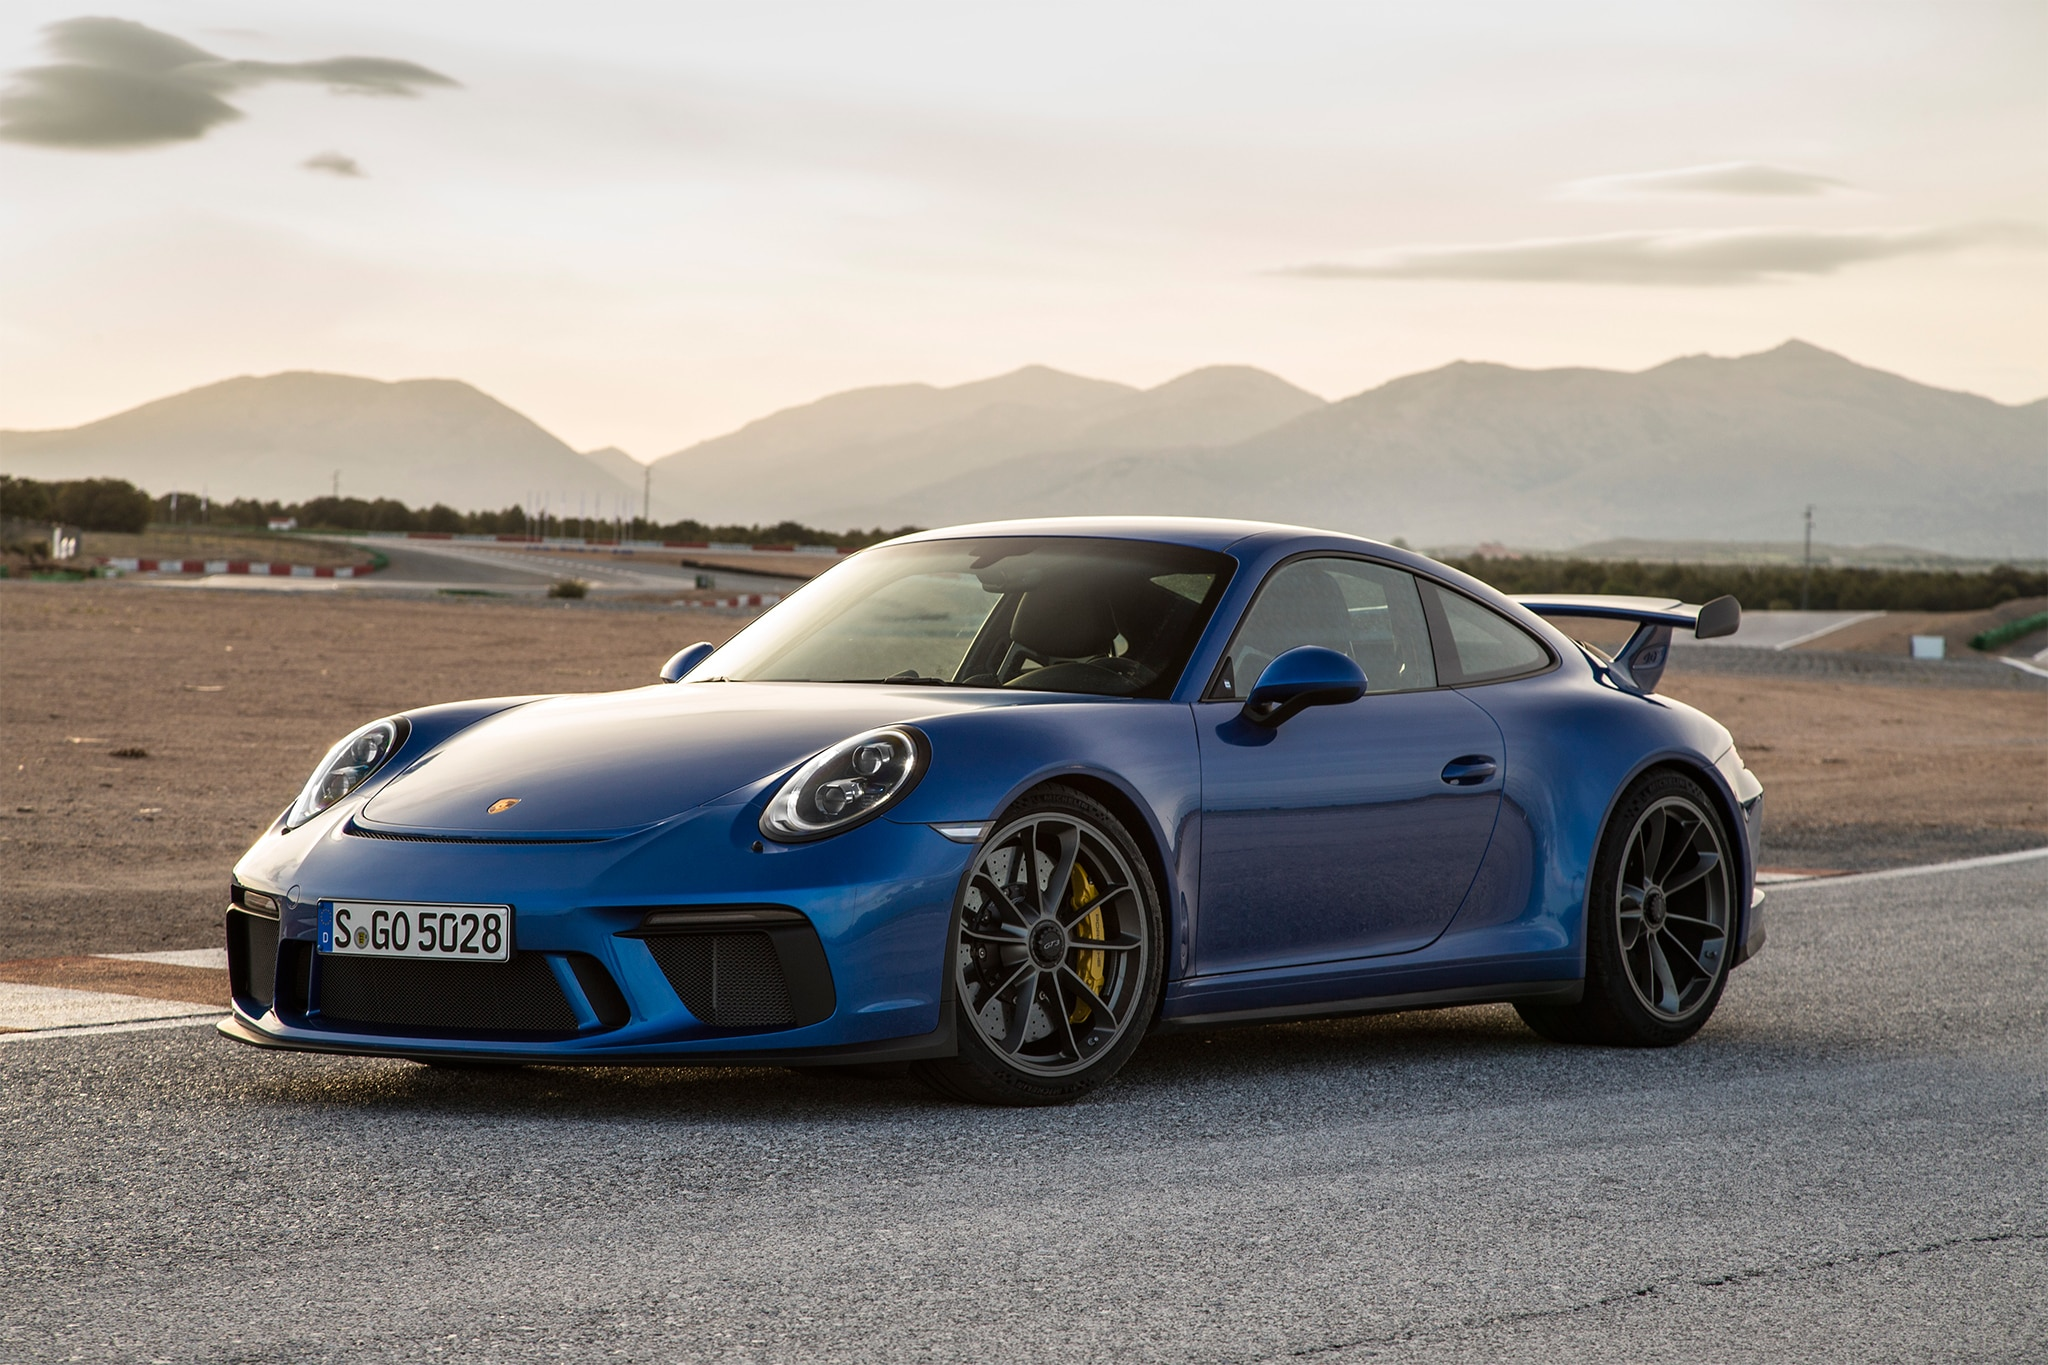 2018 Porsche 911 Gt3 >> 2018 Porsche 911 Gt3 First Drive Review Automobile Magazine